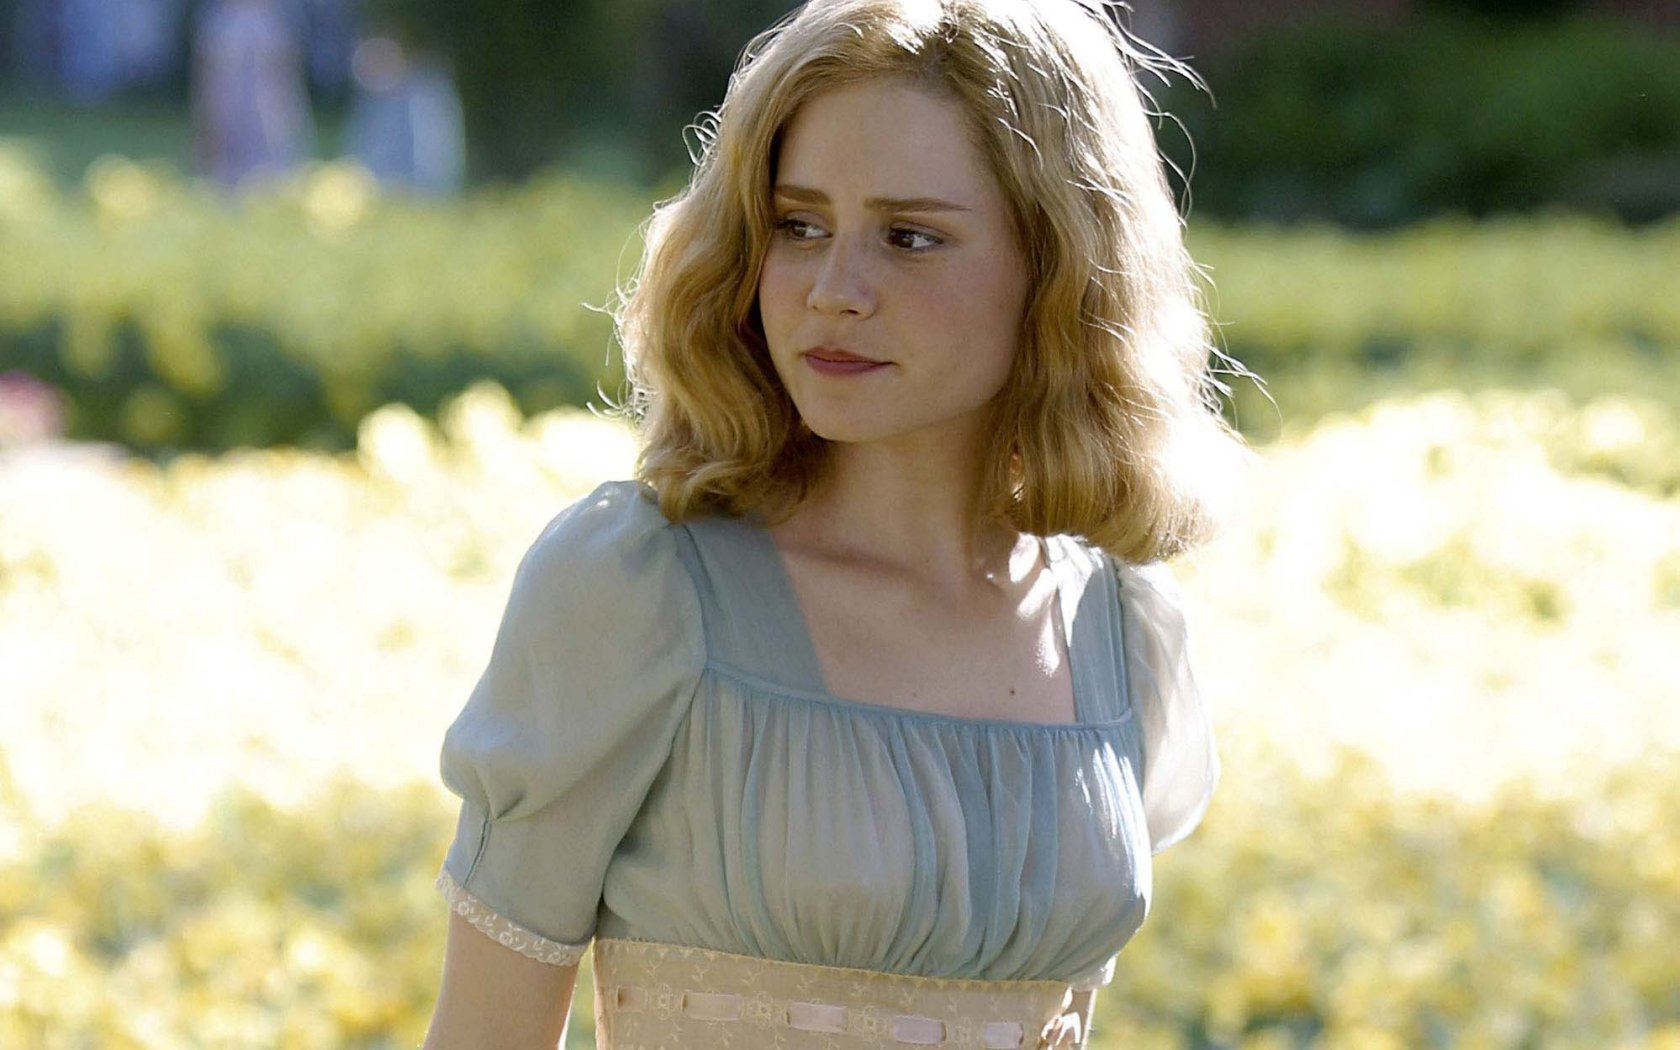 Alison-Lohman-Big-Fish-Widescreen-Wallpaper-alison-lohman-7527869-1680    Alison Lohman Big Fish